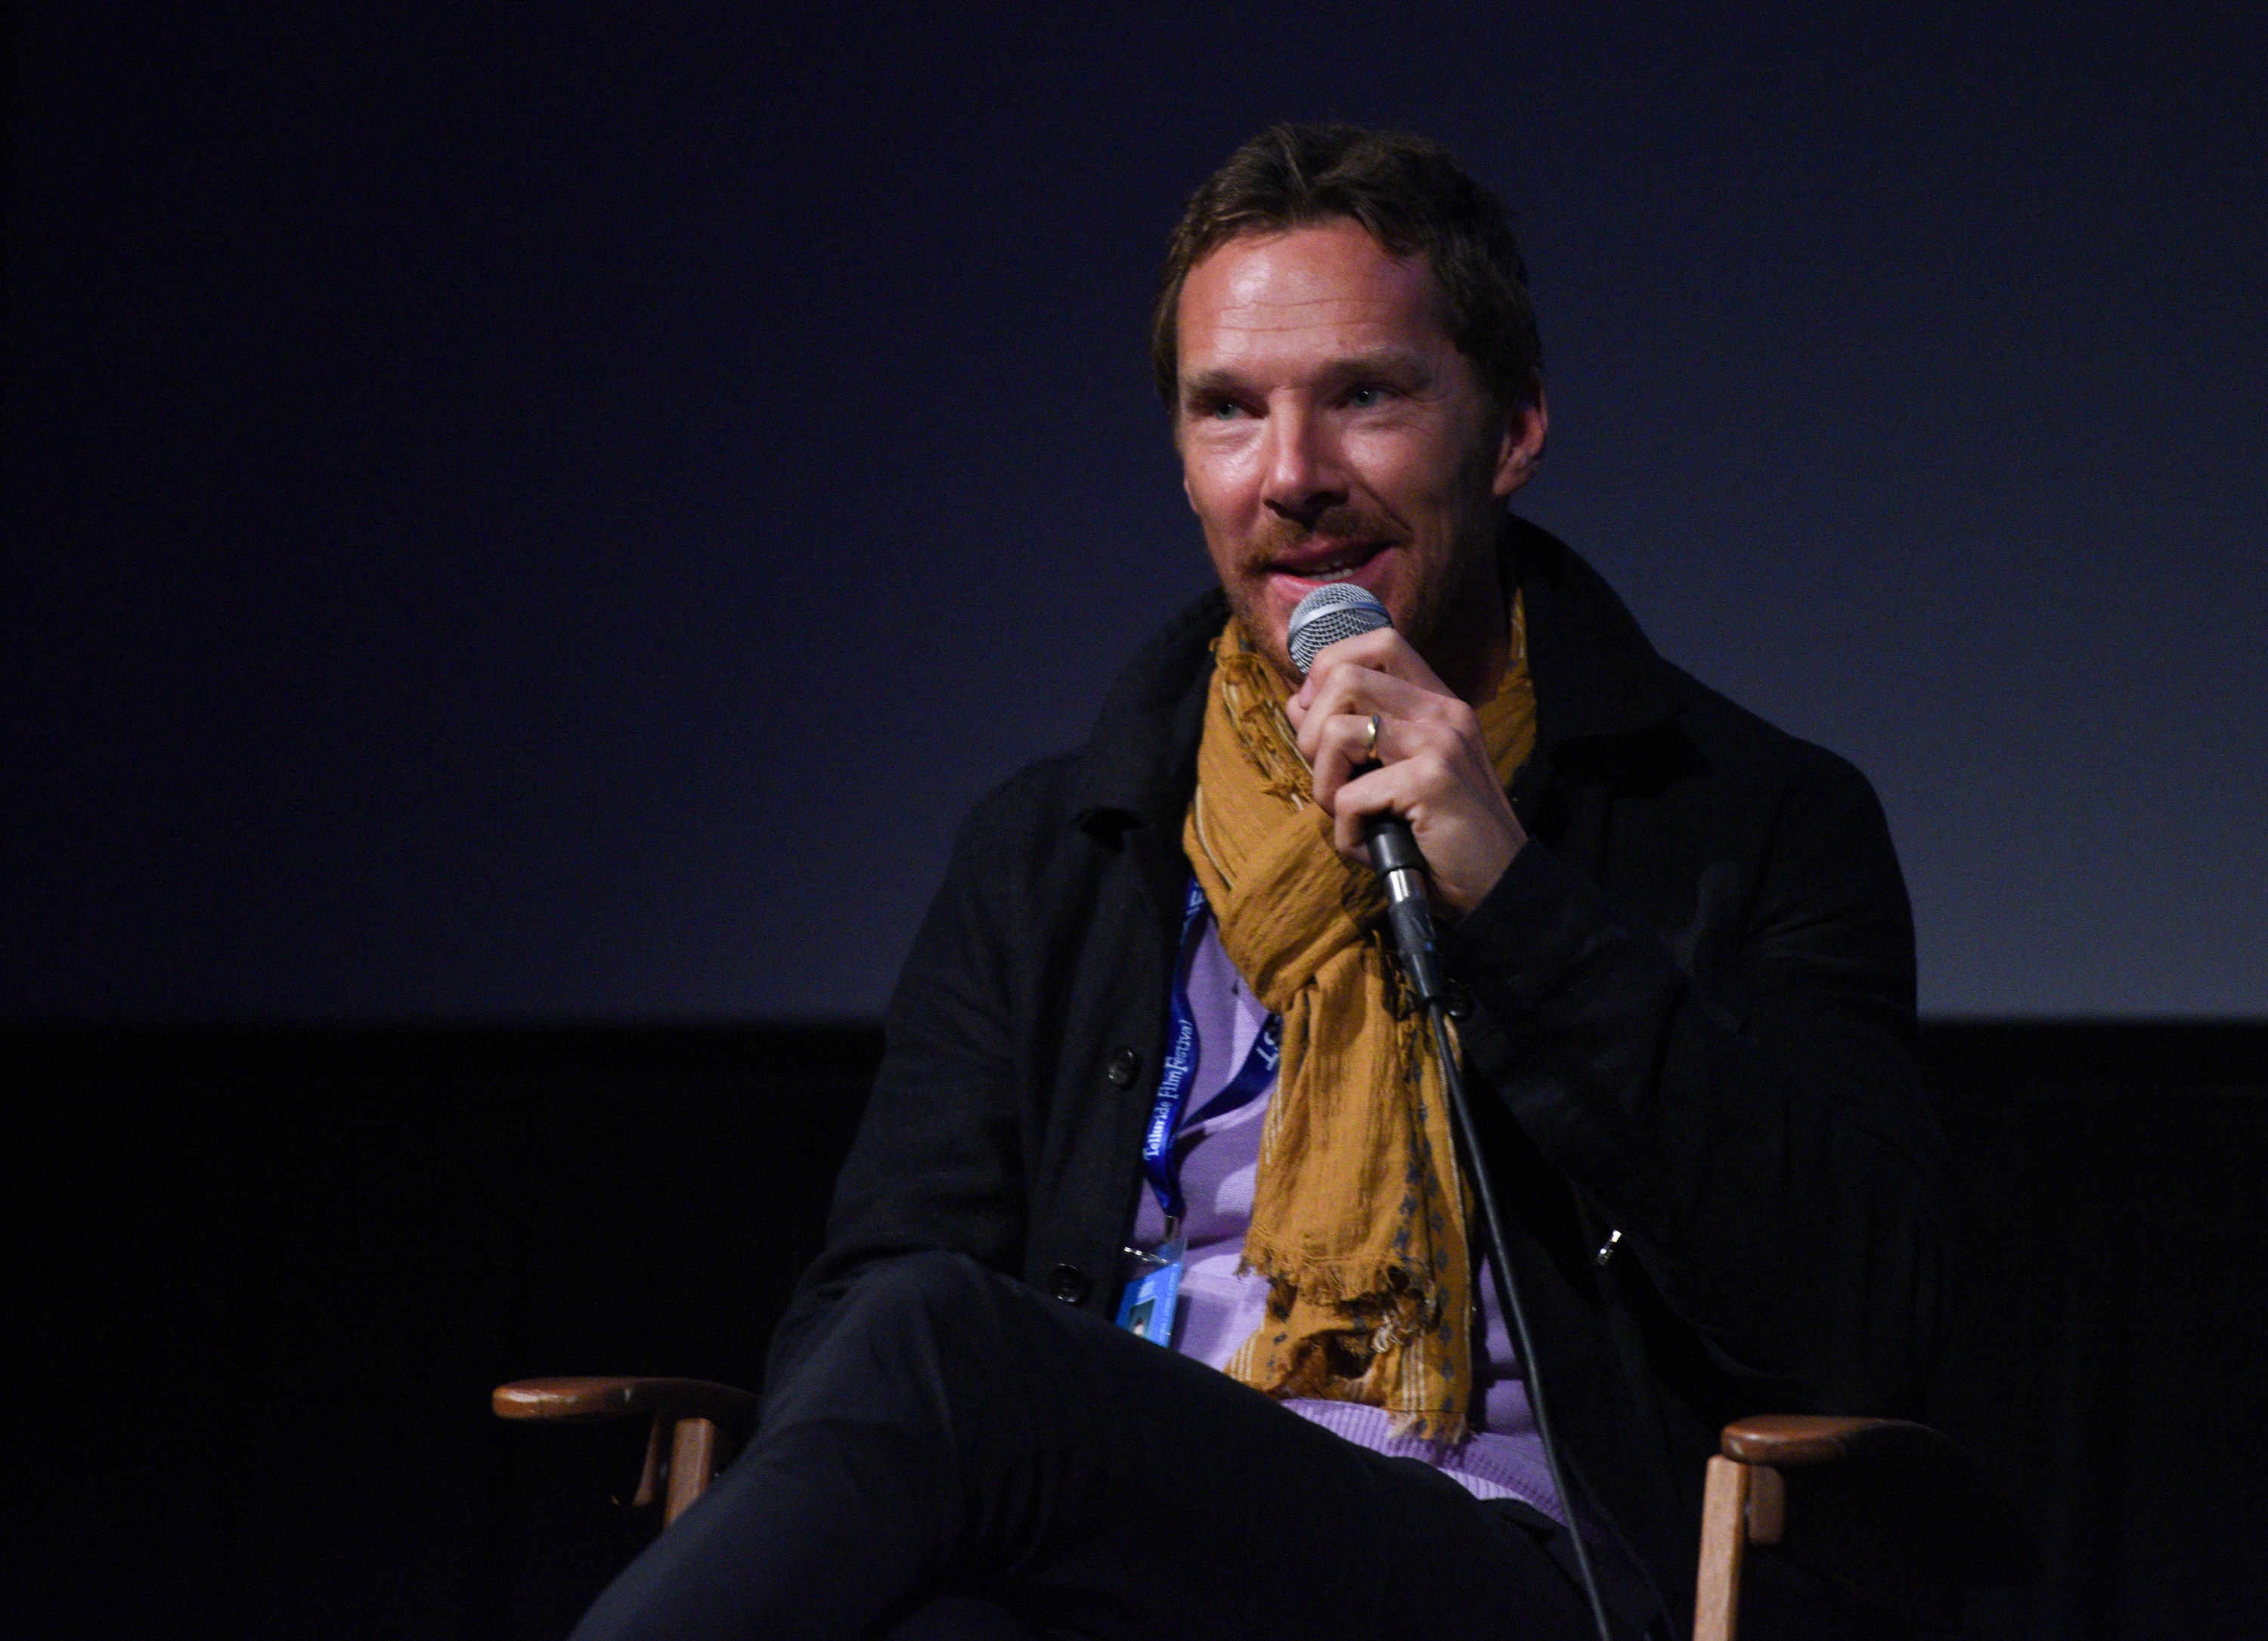 Benedict holds a microphone while speaking on stage